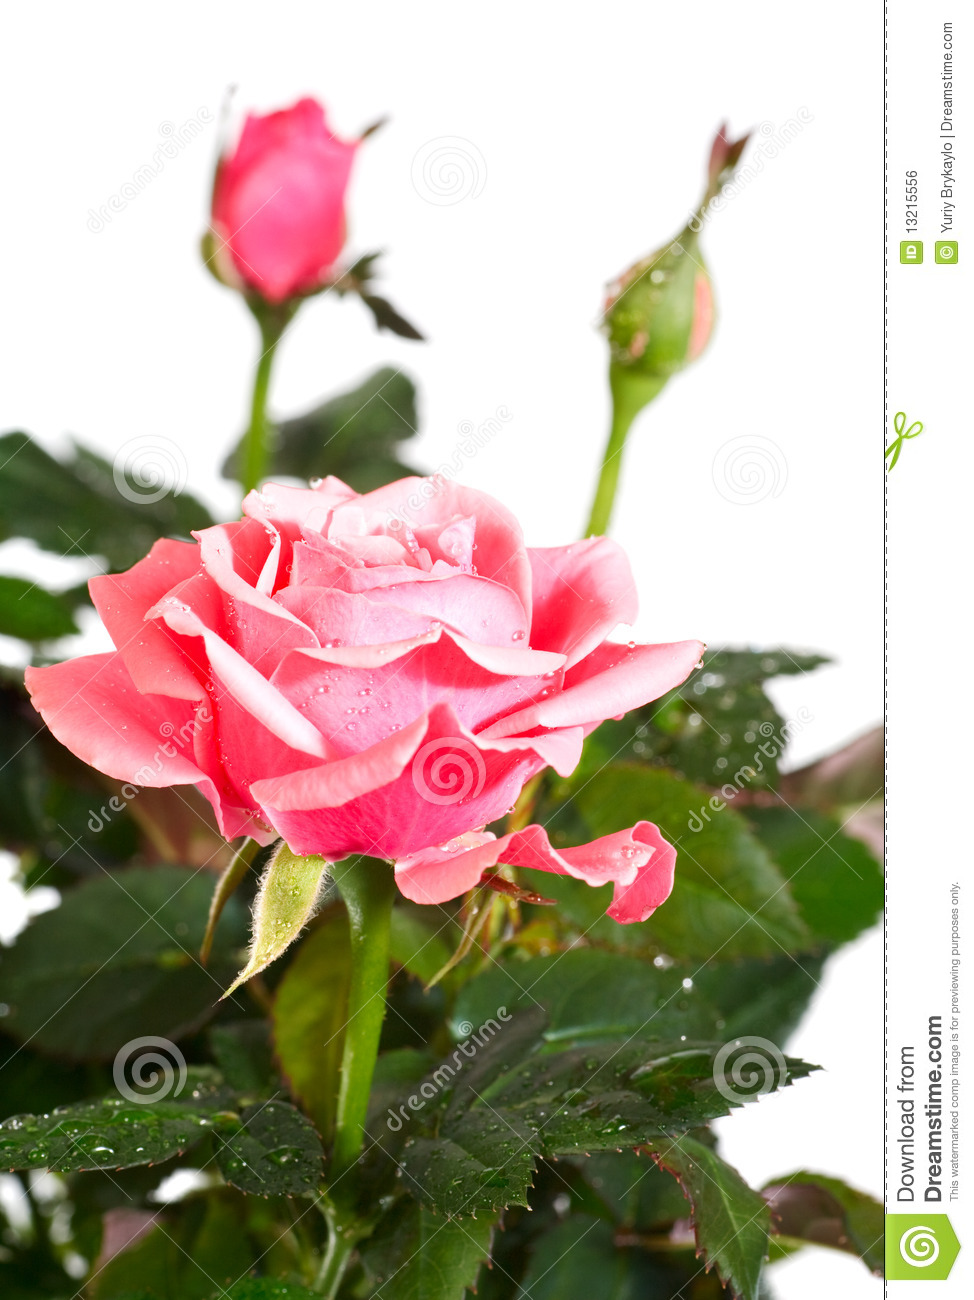 Blossoming Rose Plant With Dew Drops Royalty Free Stock